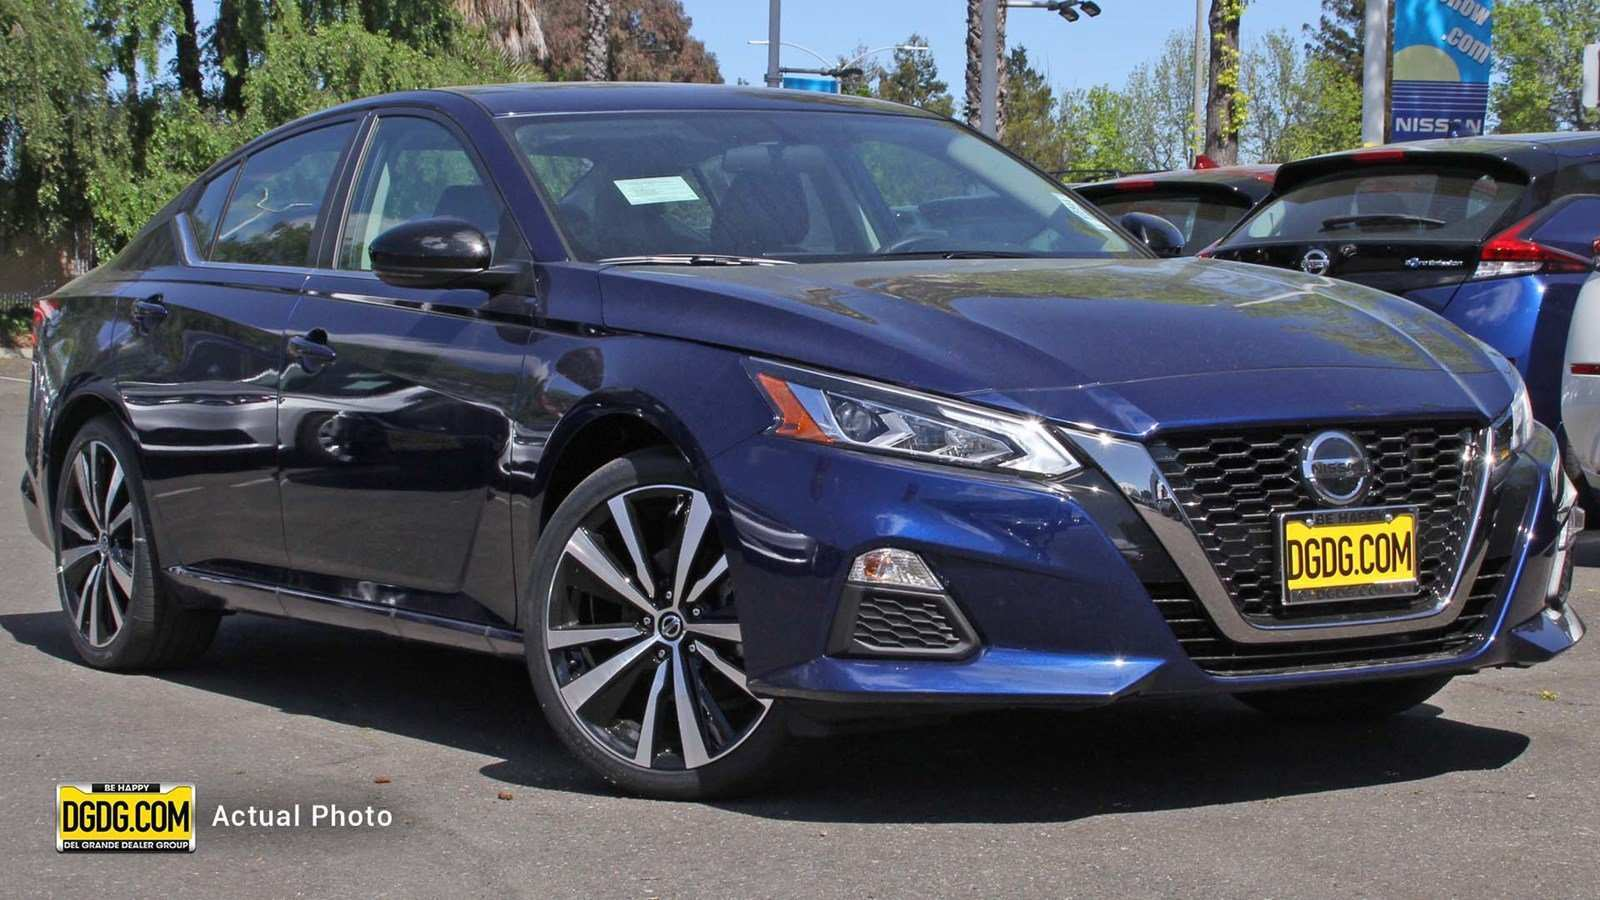 63 The Best 2019 Nissan Altima Price And Review